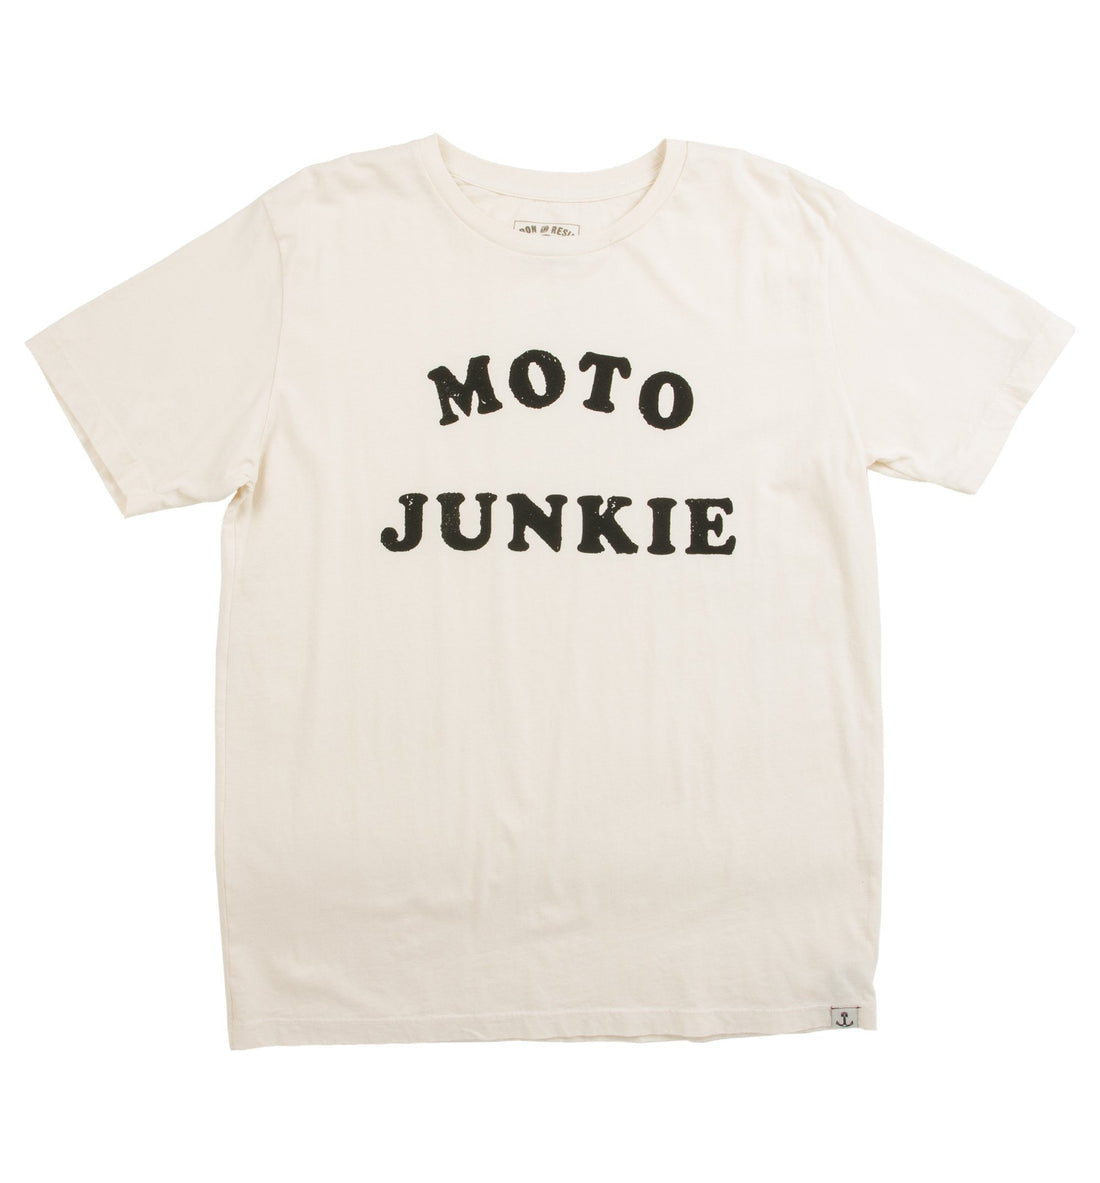 Moto Junkie Tee - Tops - Iron and Resin